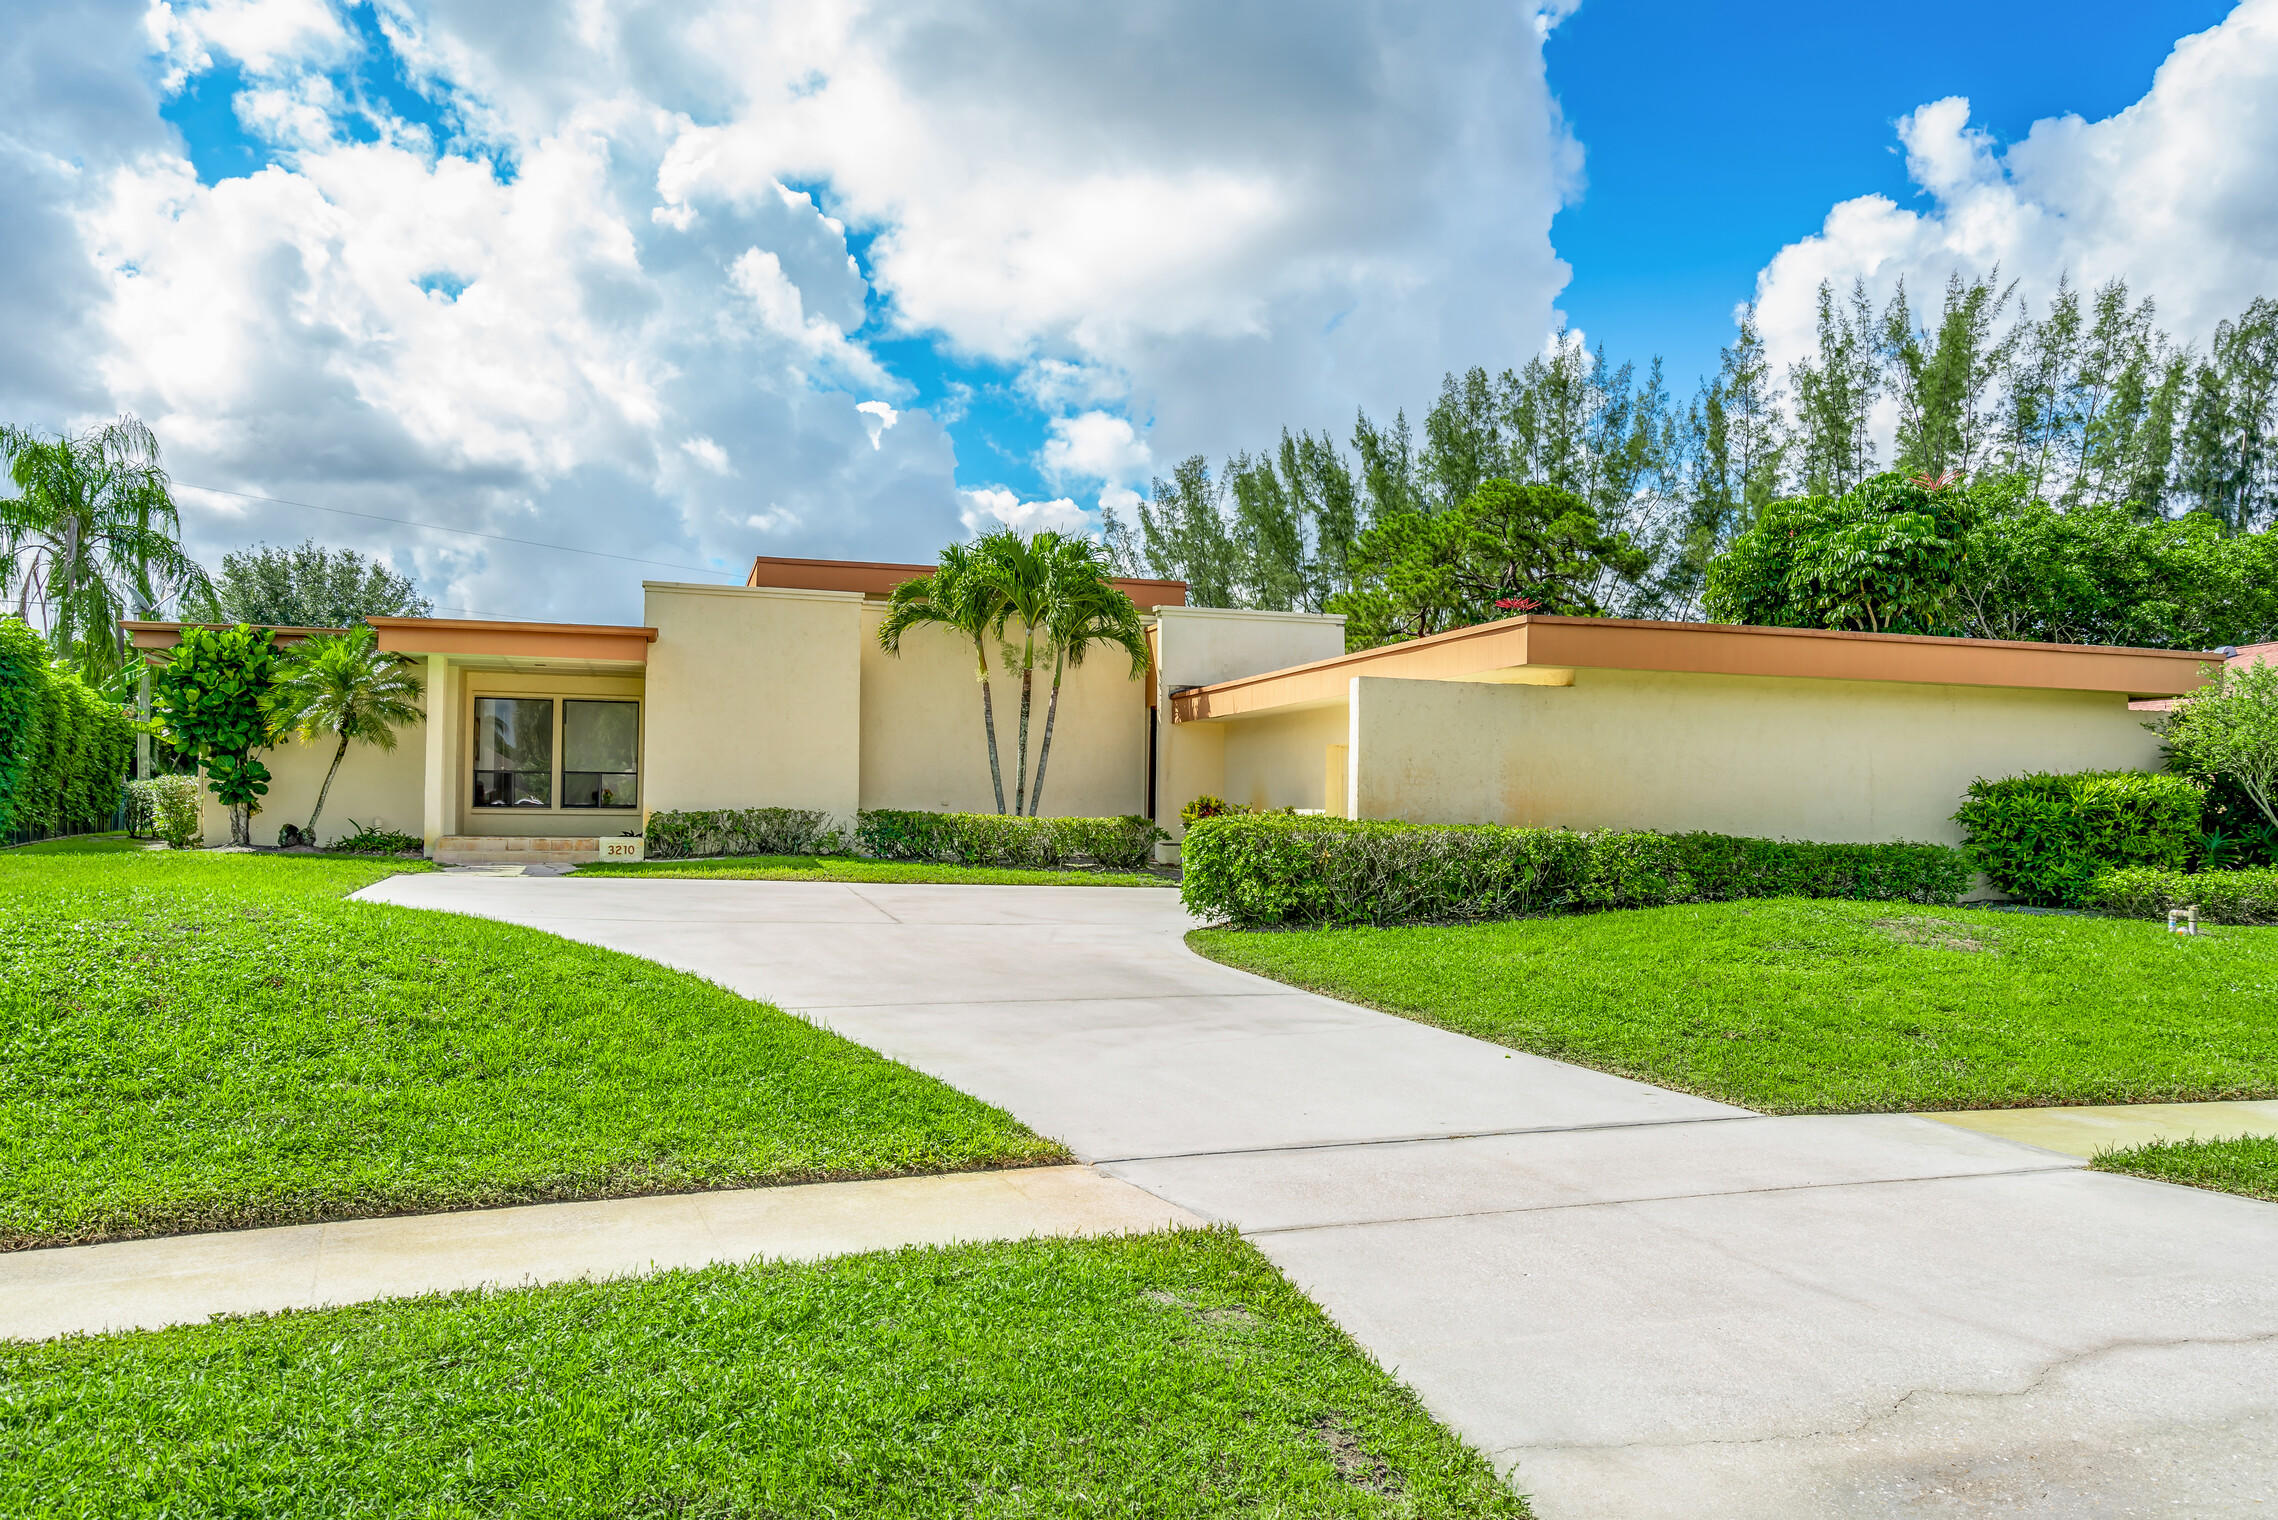 Home for sale in PALM BEACH NATL GOLF AND COUNTRY CLUB ESTATES 1 Lake Worth Florida